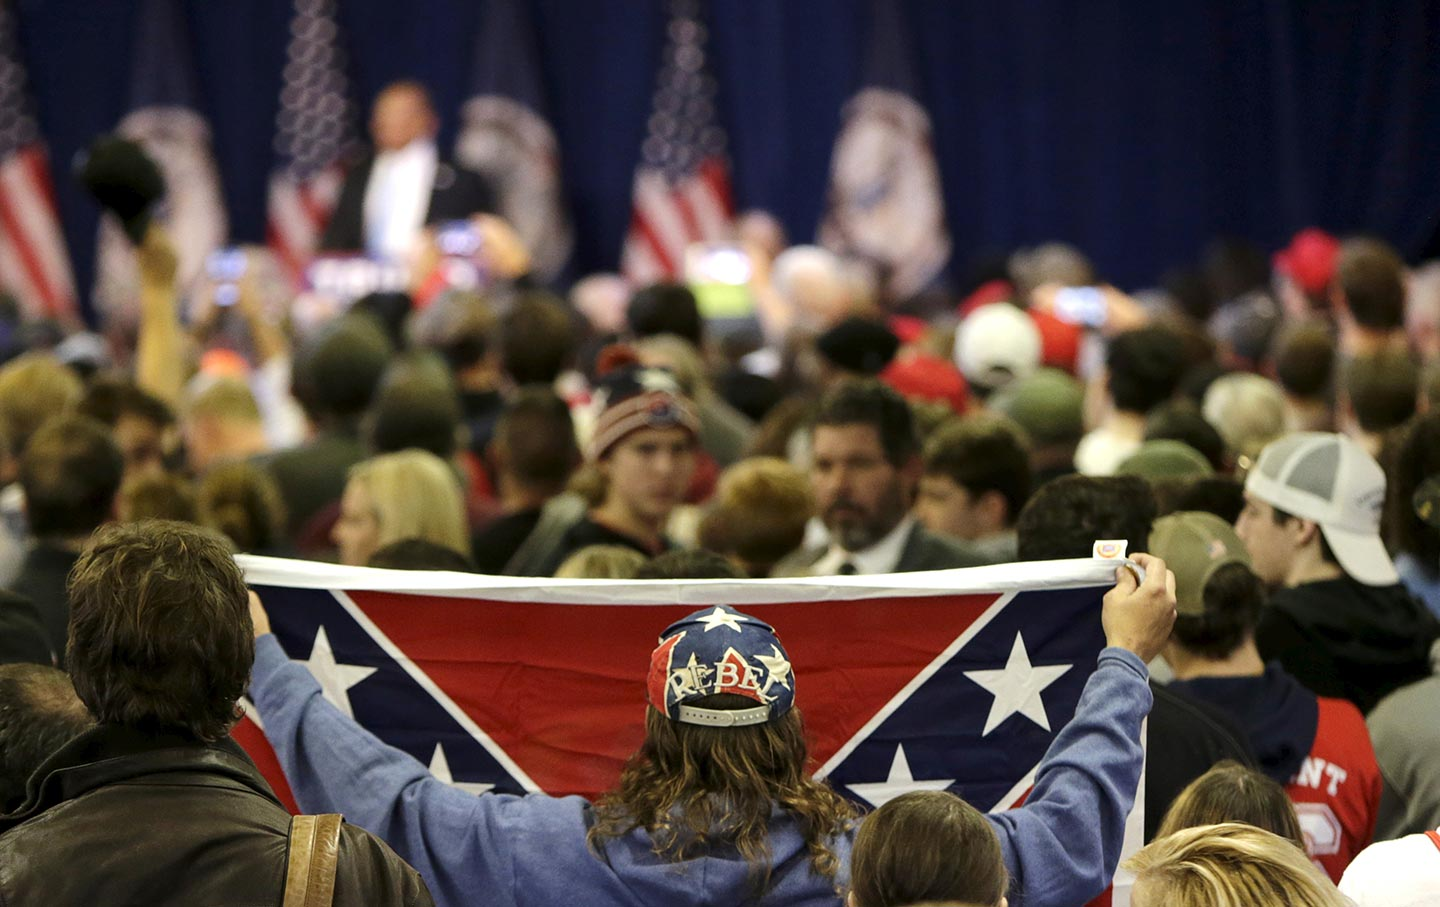 trump-rally-confederate-flag-rtr-img